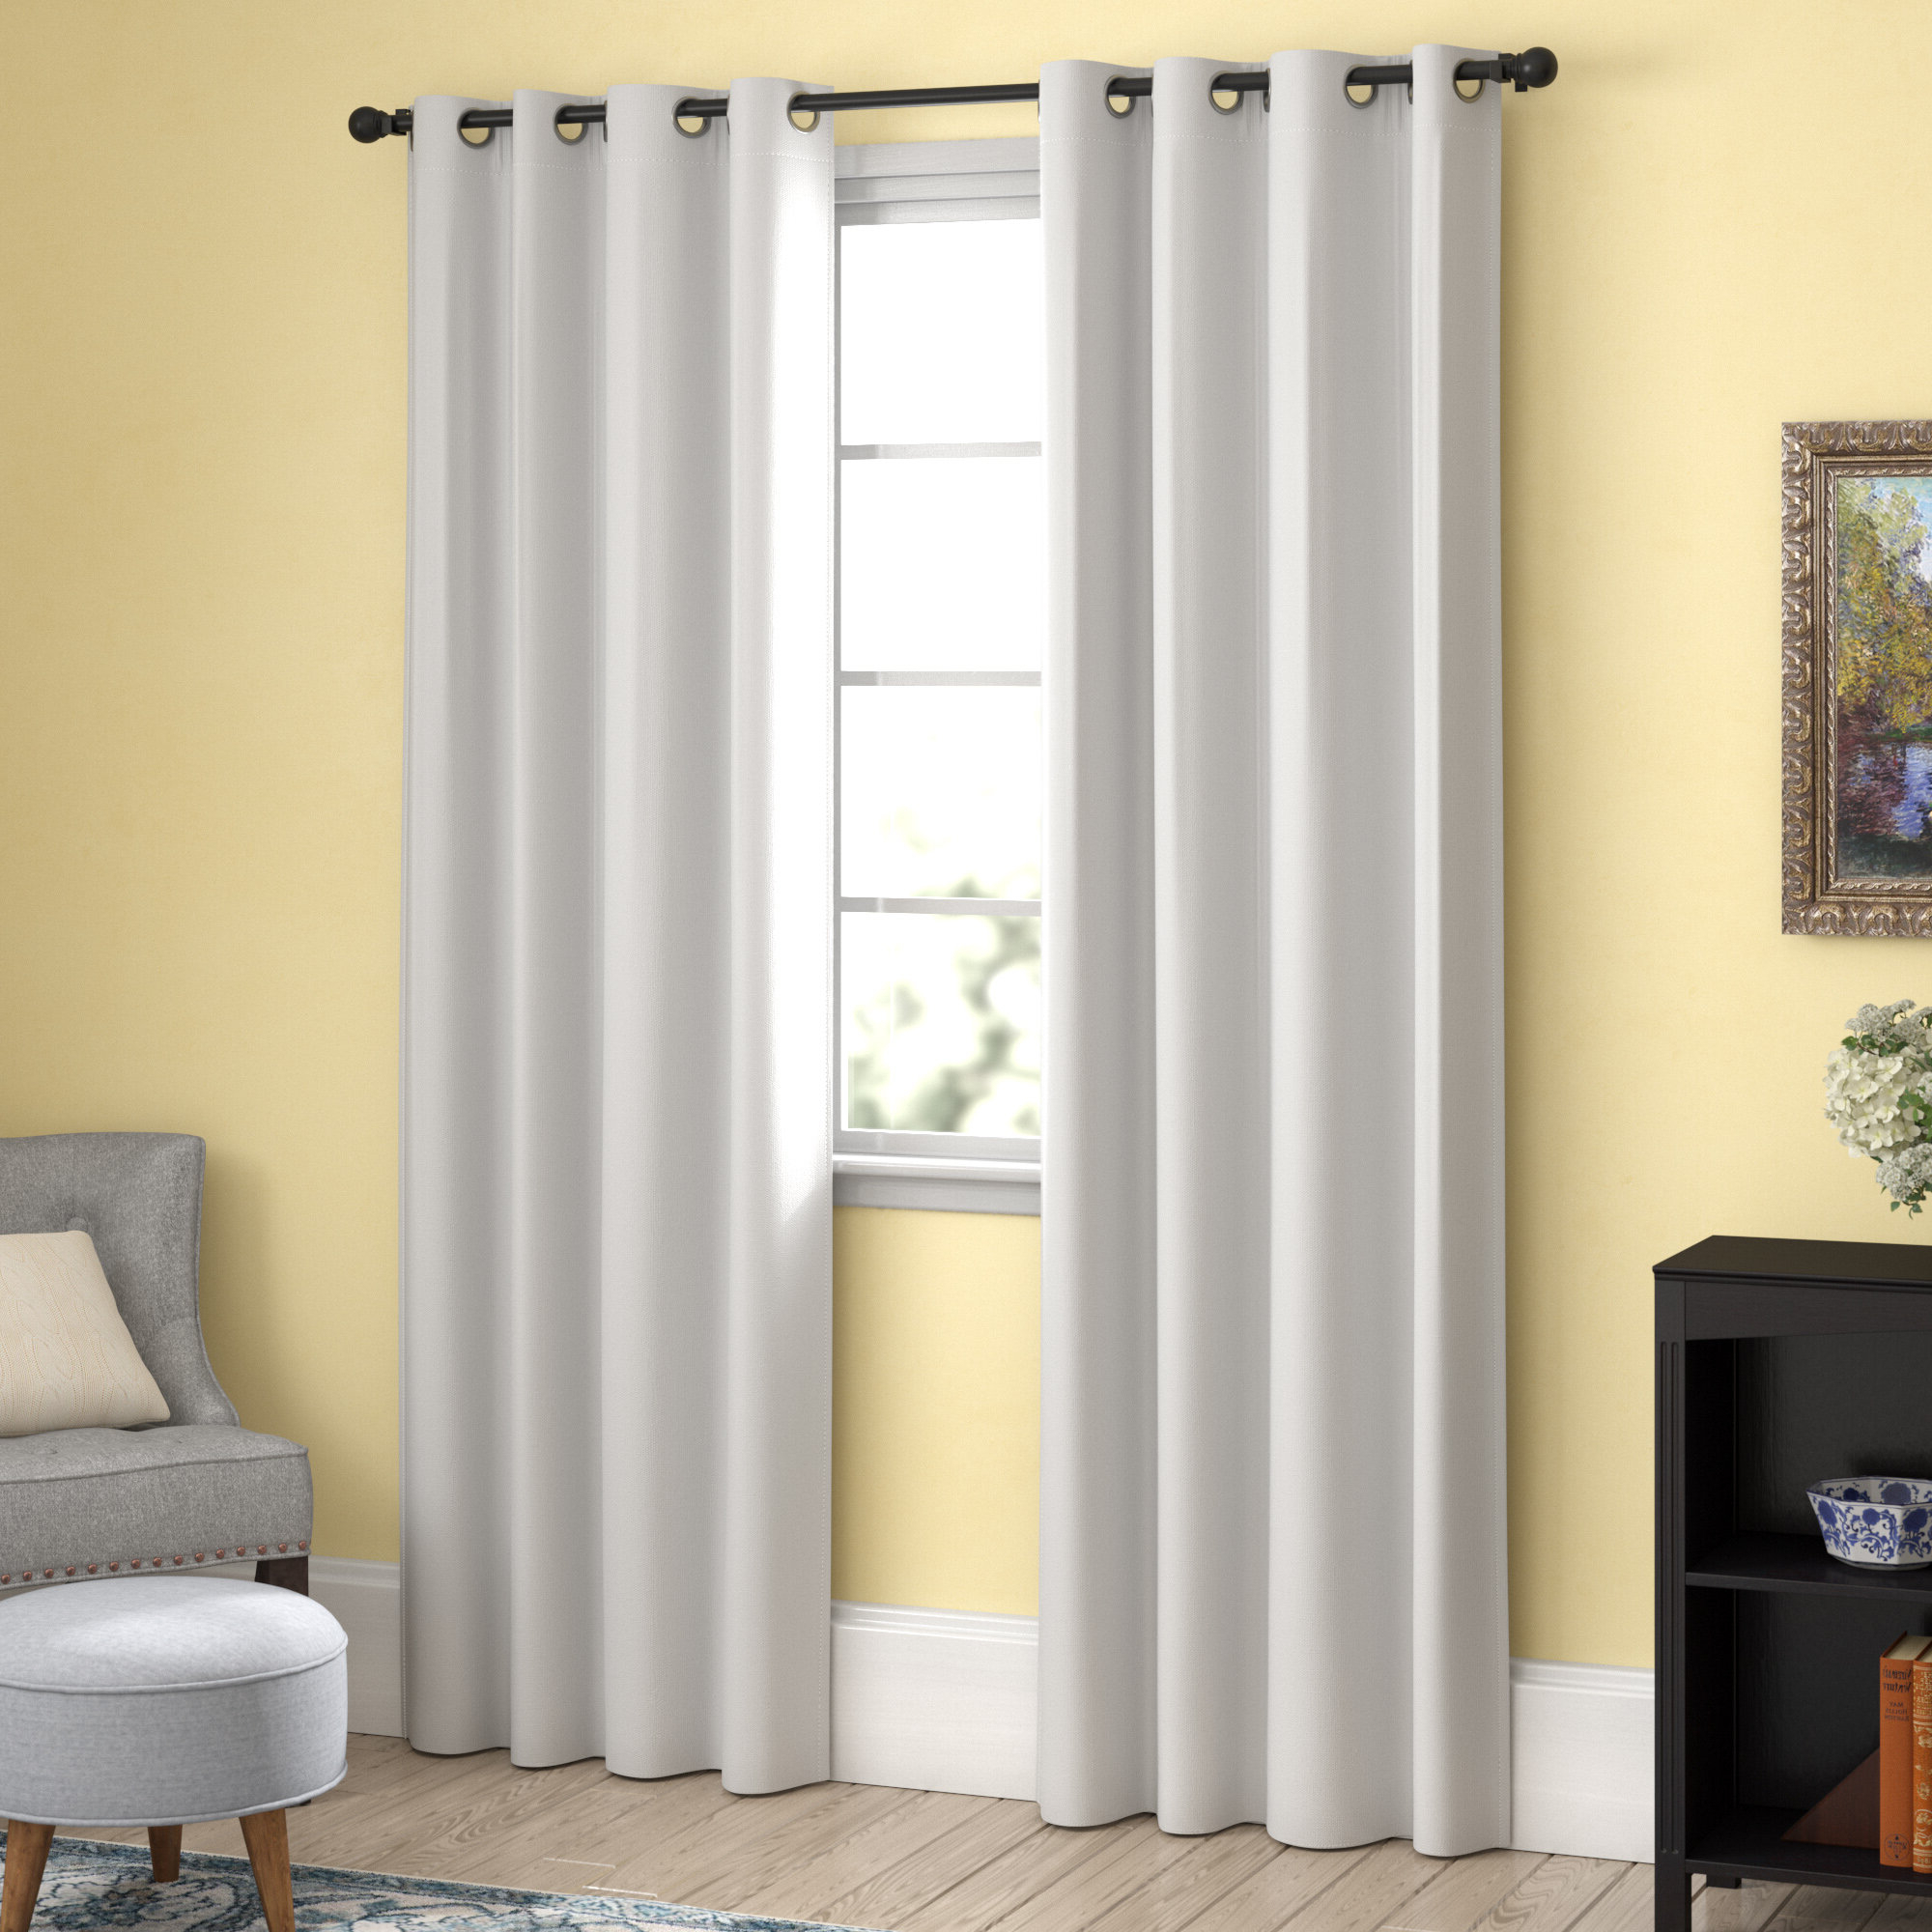 Chet Insulated Lined Solid Blackout Thermal Grommet Curtain Panels Throughout Preferred Duran Thermal Insulated Blackout Grommet Curtain Panels (View 15 of 21)